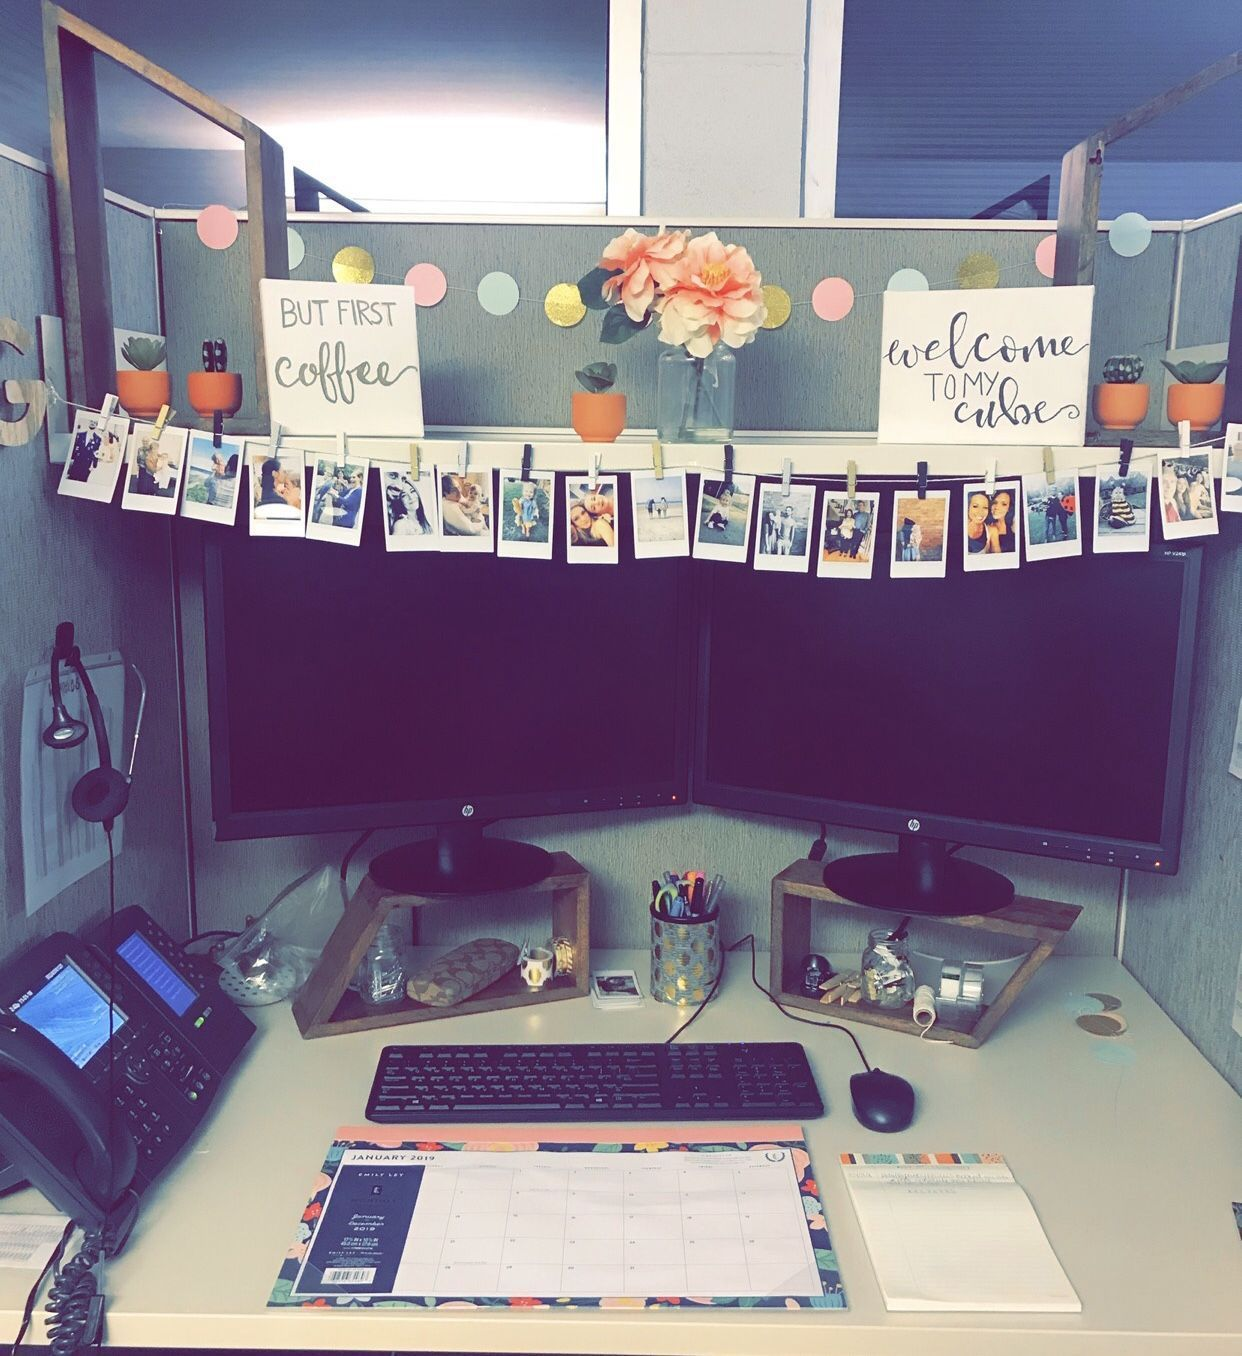 51 Diy Cubicle Decor Ideas For Better Working Space Furniture Cubicle Decor Office Work Cubicle Decor Cubicle Decor